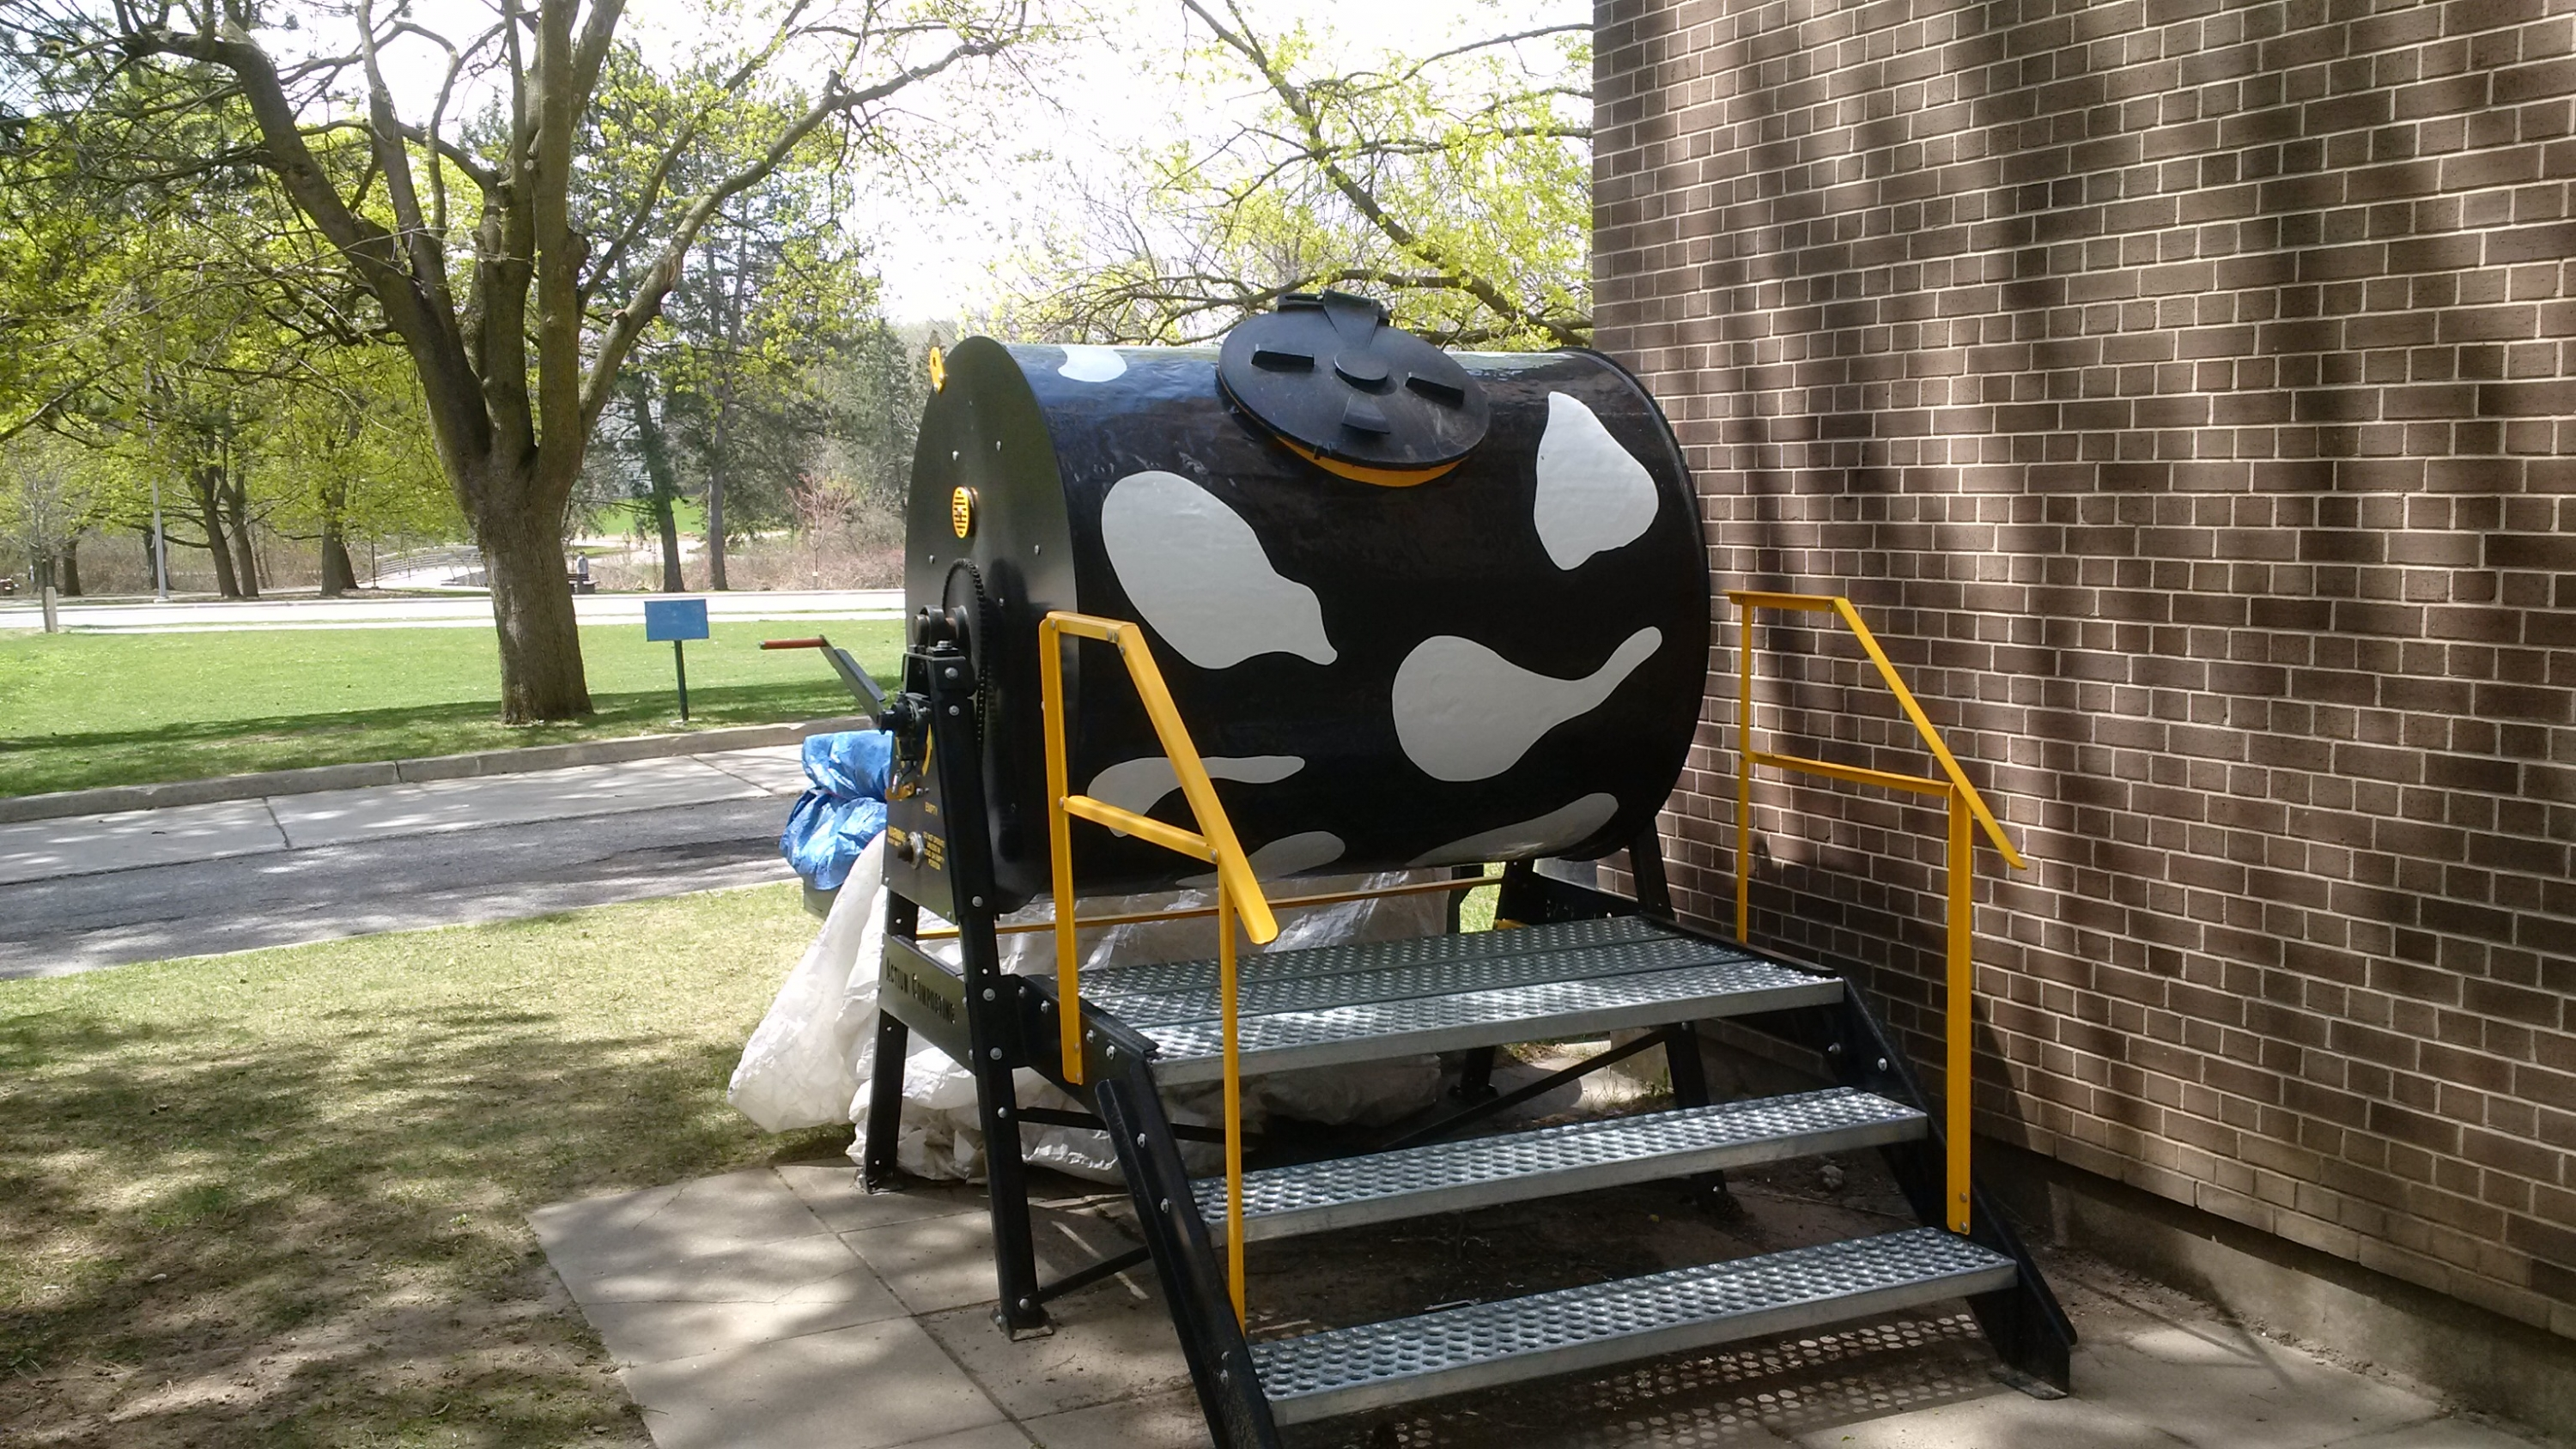 Compost bin painted as a cow